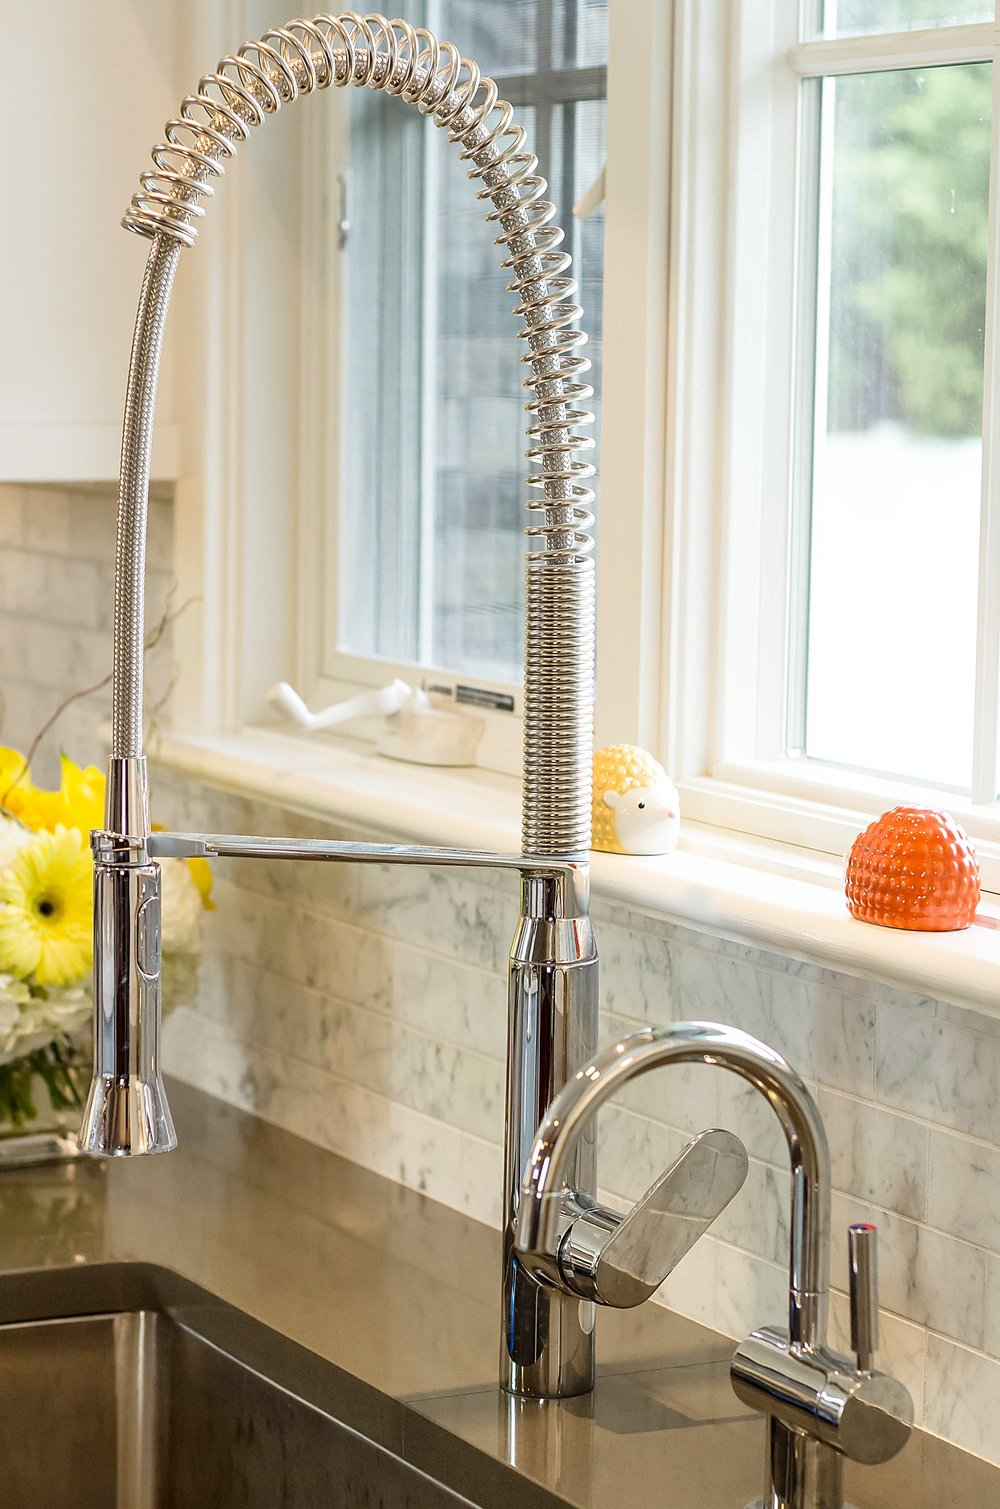 Traditional style kitchen with bended water faucet